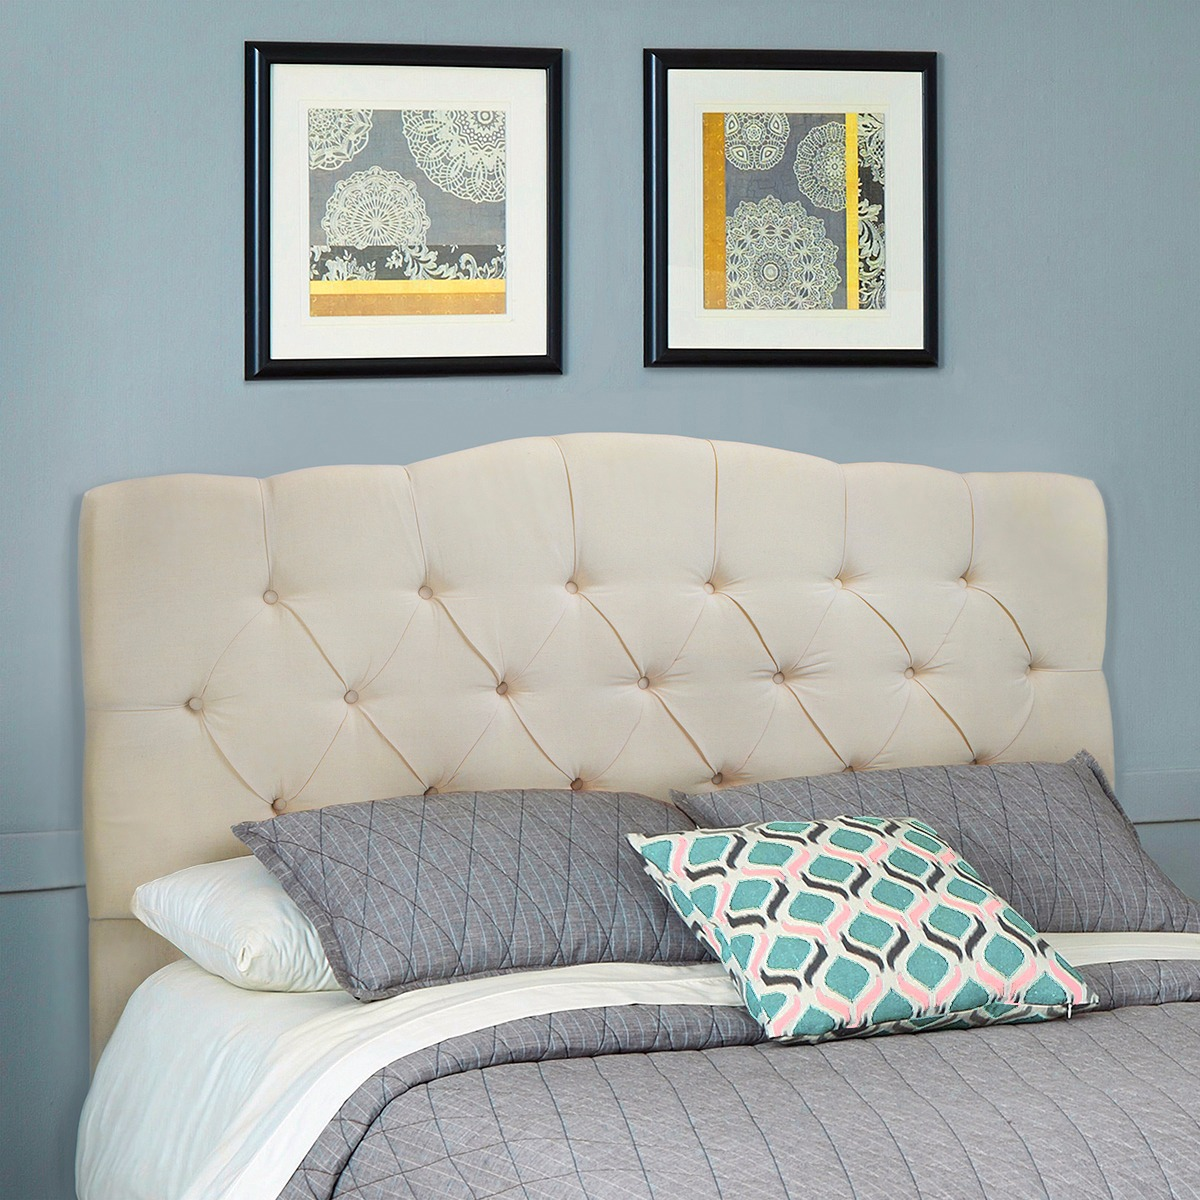 Full/Queen Bed Headboard Modern Tufted Fabric, Beige